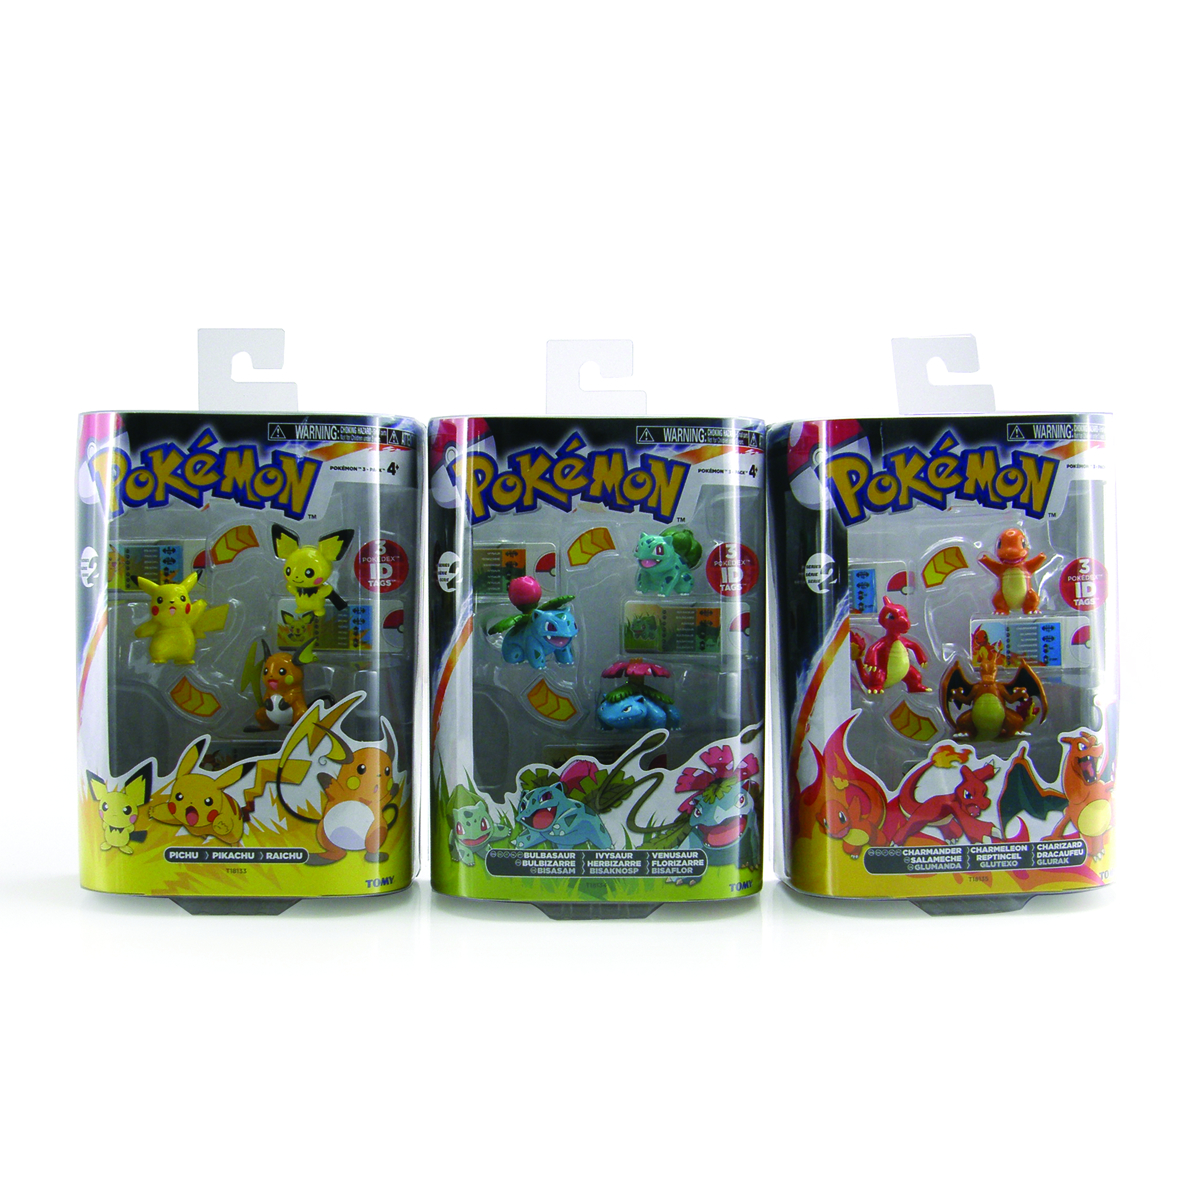 POKEMON EVOLUTION 3PK MINI FIG 4PC ASST